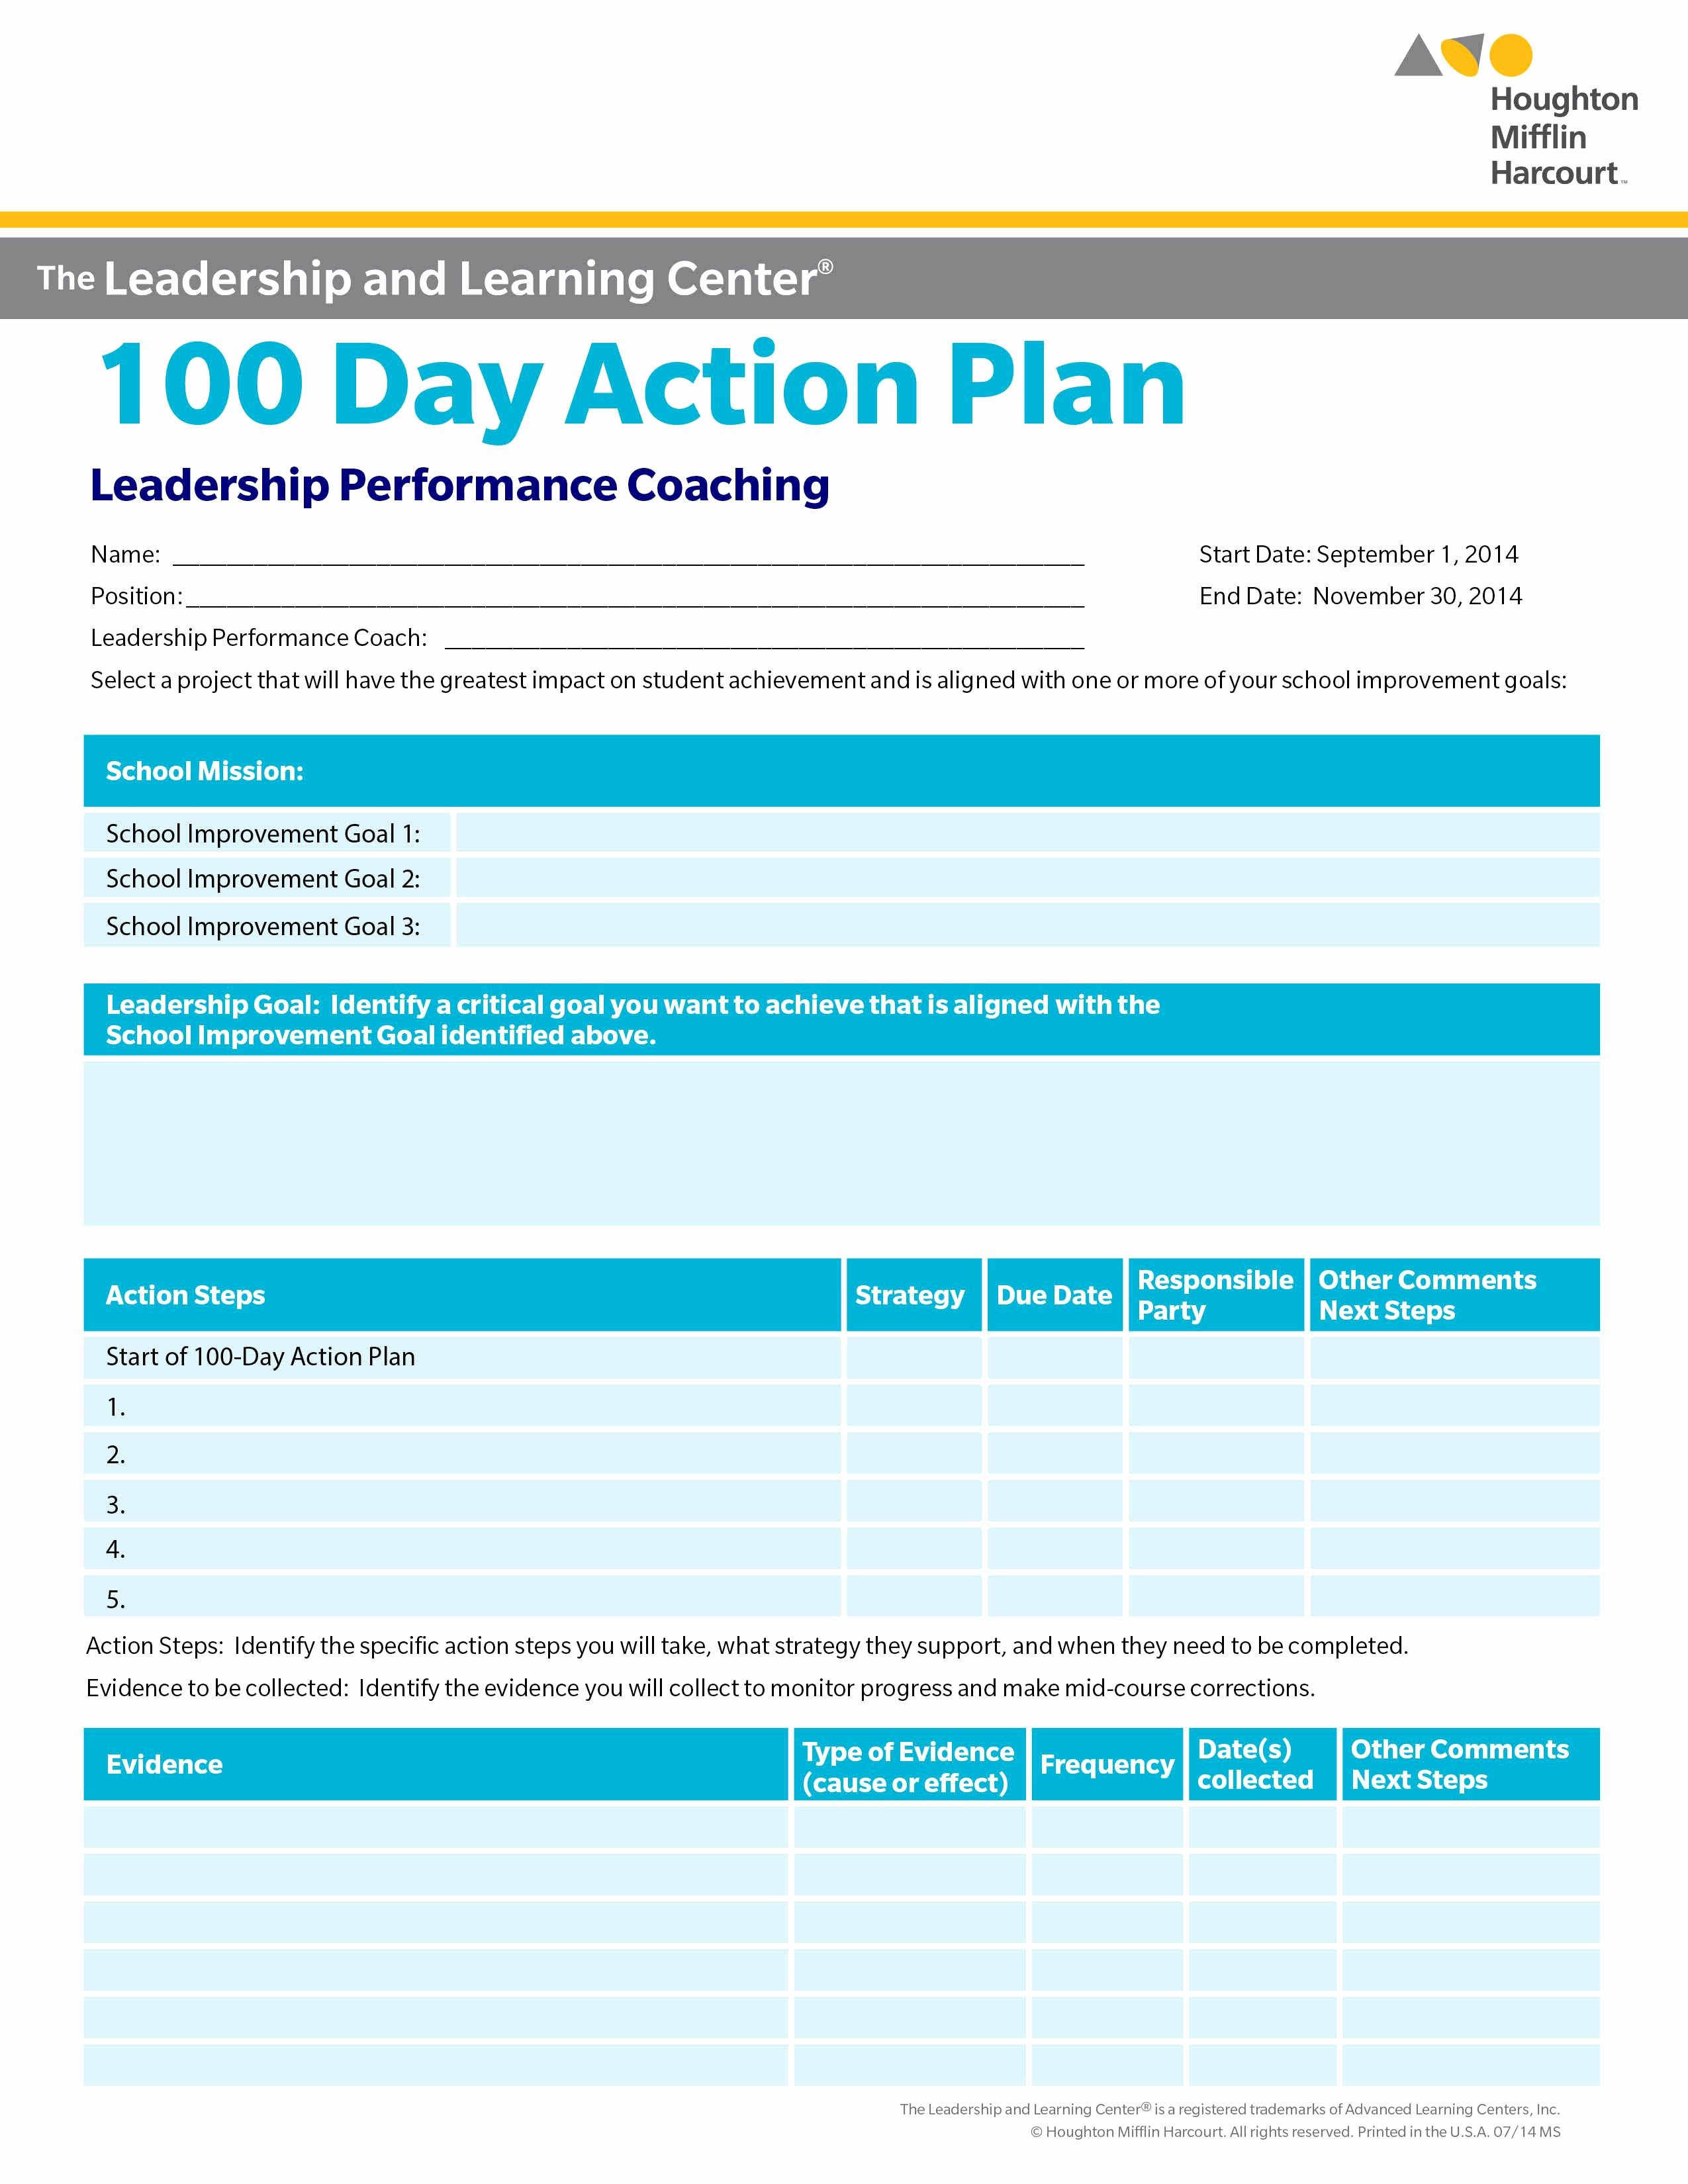 100 Day Plan Template Elegant School Improvement 100 Day Action Plan Select A Goal for School Improvement that Will Make A